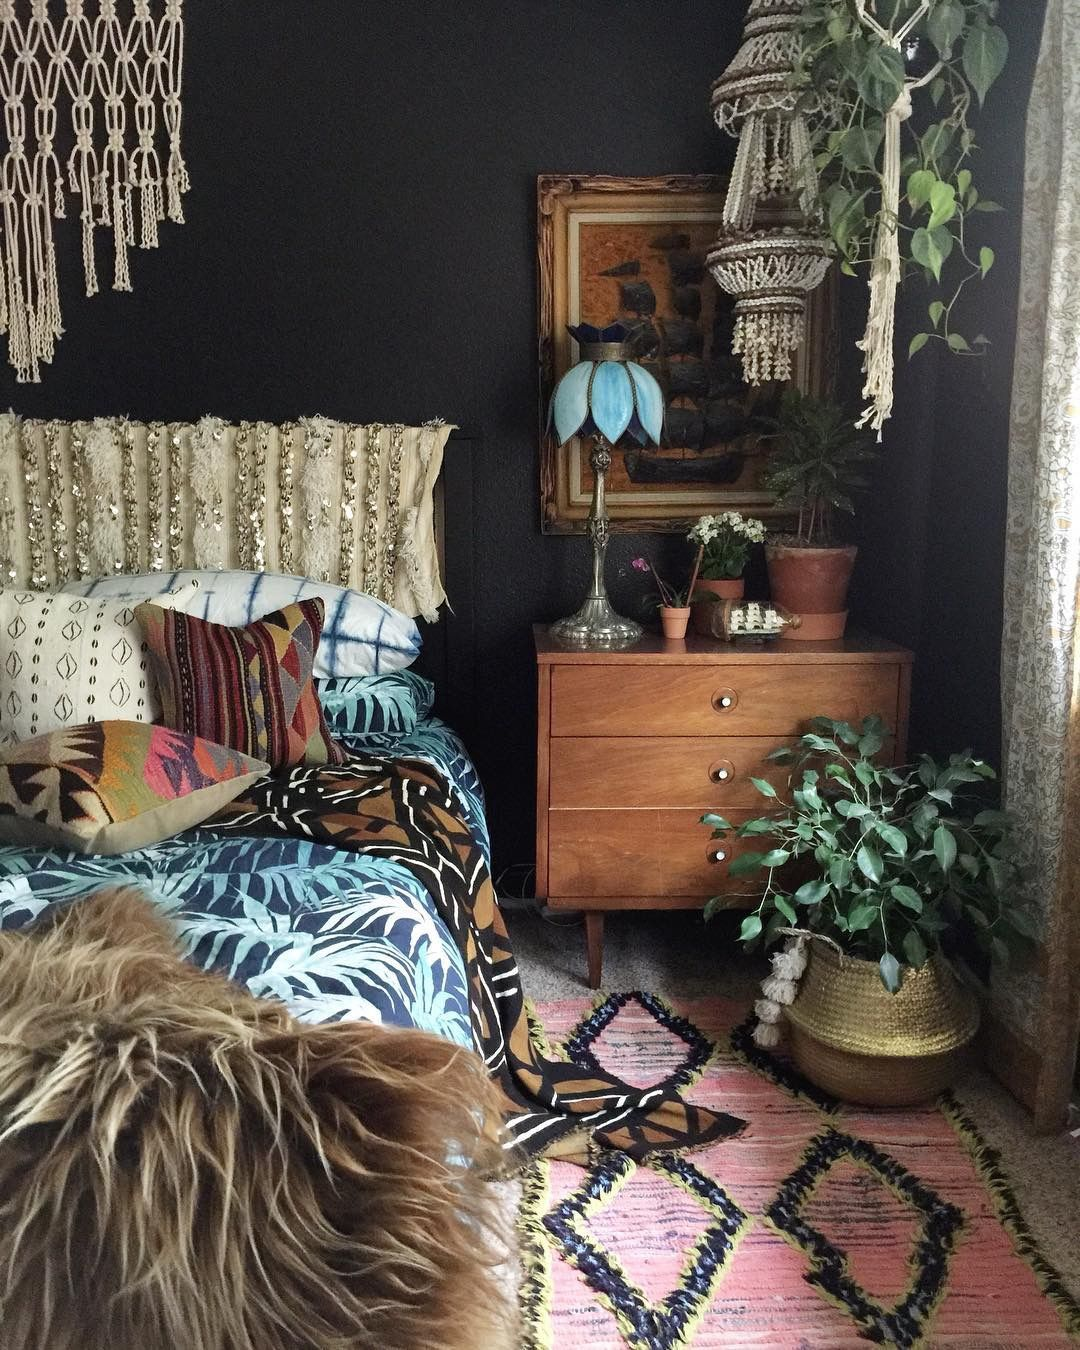 I love the dark wall and the wrapped headboard. Maybe watch for a fancy full-sized throw blanket.